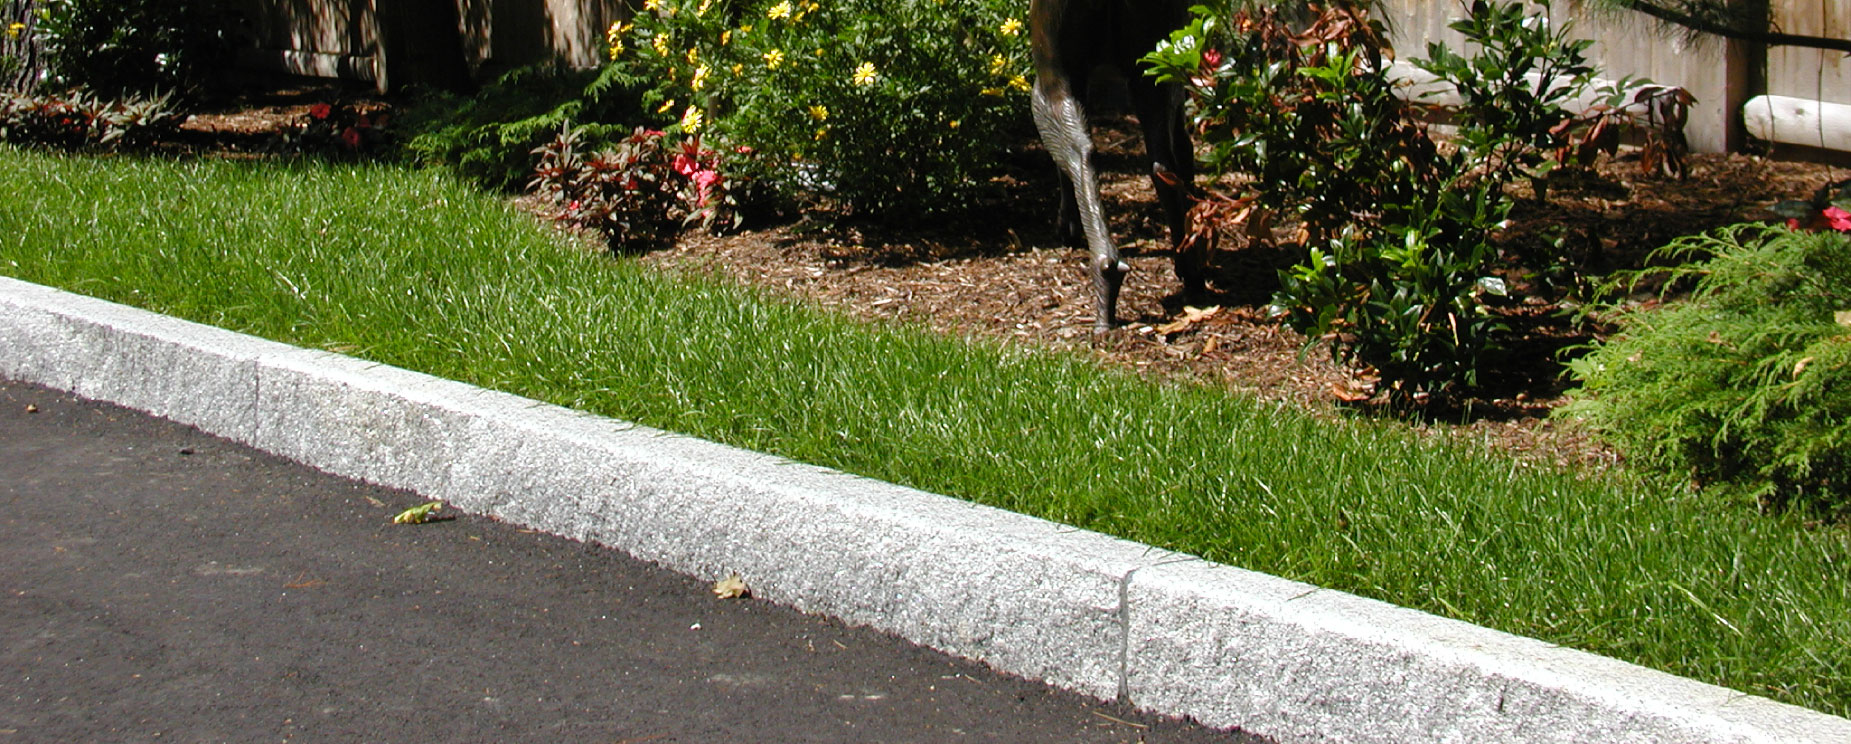 Walls, caps & edging - Polycor Hardscapes